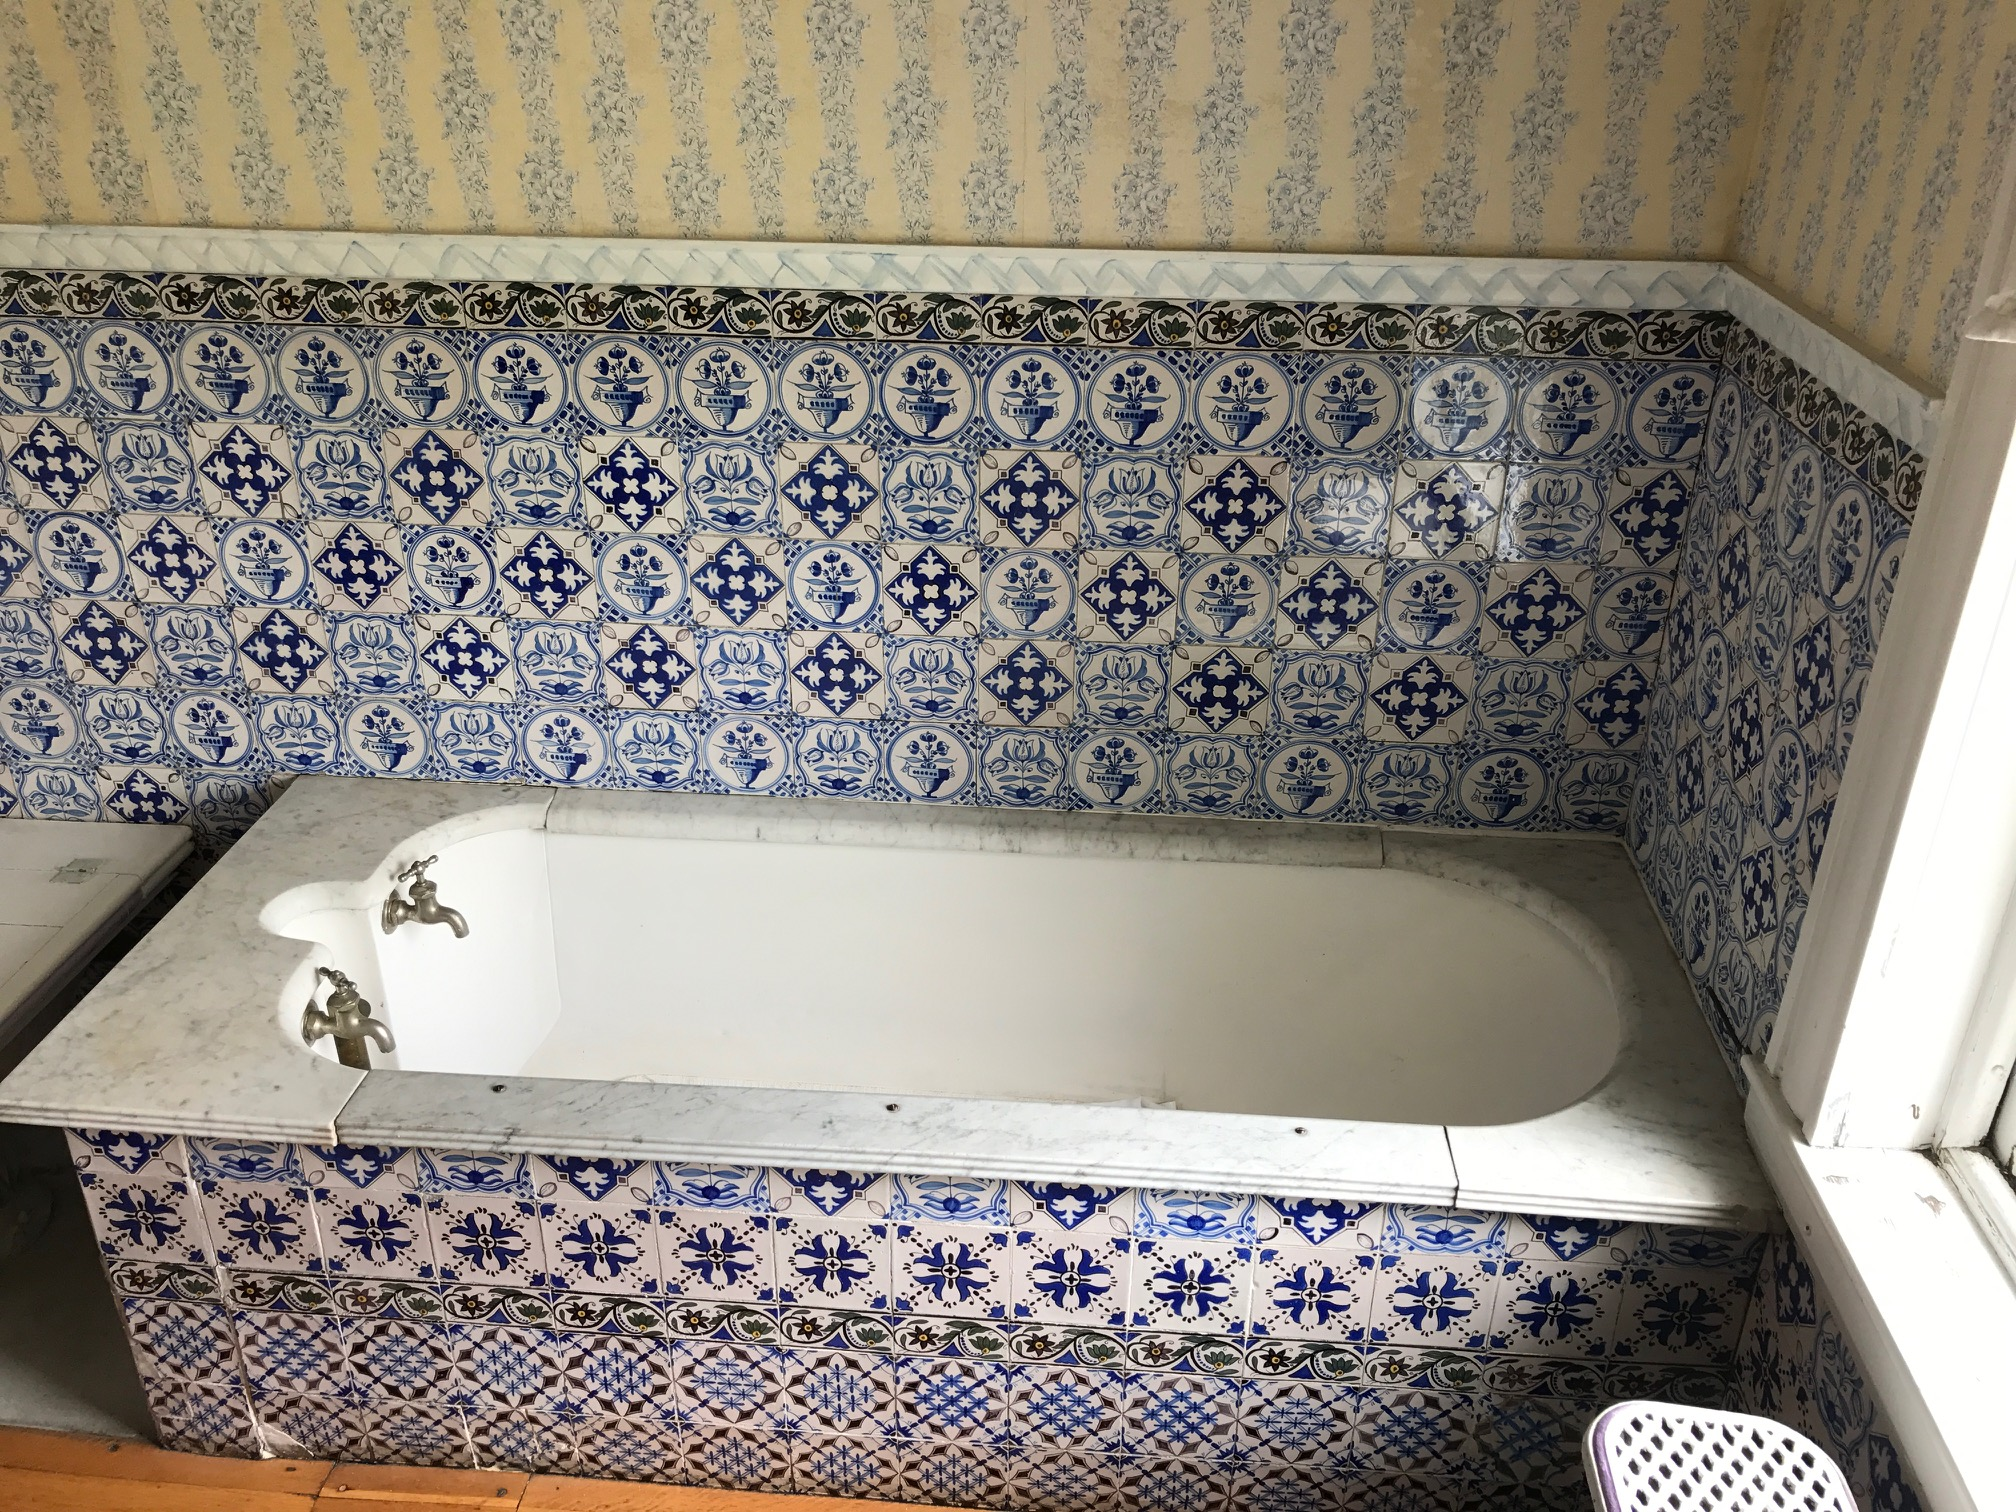 "BEFORE: BEAUTIFULLY DETAILED MOROCCAN & DELFT TILES THAT INSPIRED THE ""RHAPSODY IN BLUES"" THEME. THE OLD BATH TUB WAS FOUND TO BE MADE OF GLEAMING COPPER, WHICH WE RECOVERED."